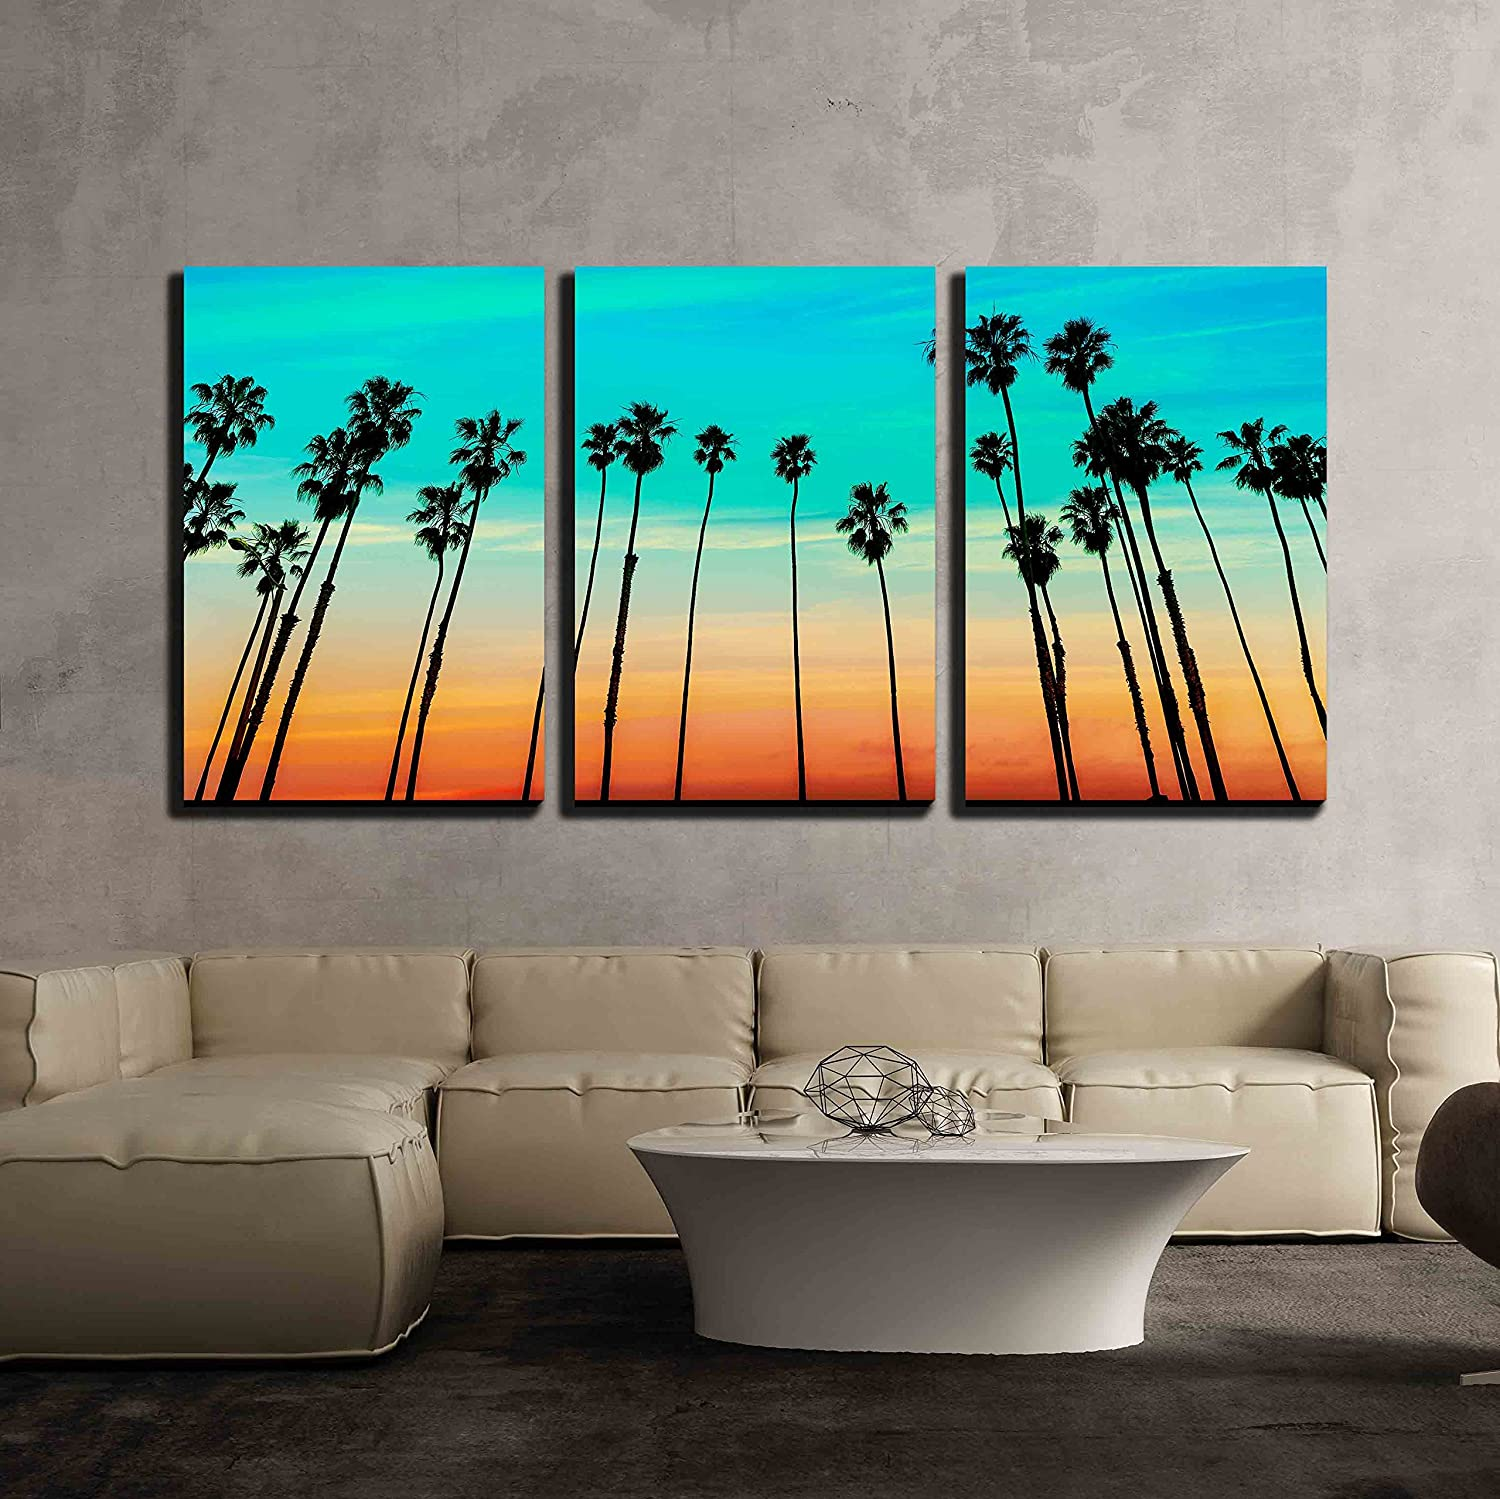 """wall26 - 3 Piece Canvas Wall Art - California Sunset Palm Tree Rows in Santa Barbara US - Modern Home Decor Stretched and Framed Ready to Hang - 16""""x24""""x3 Panels"""